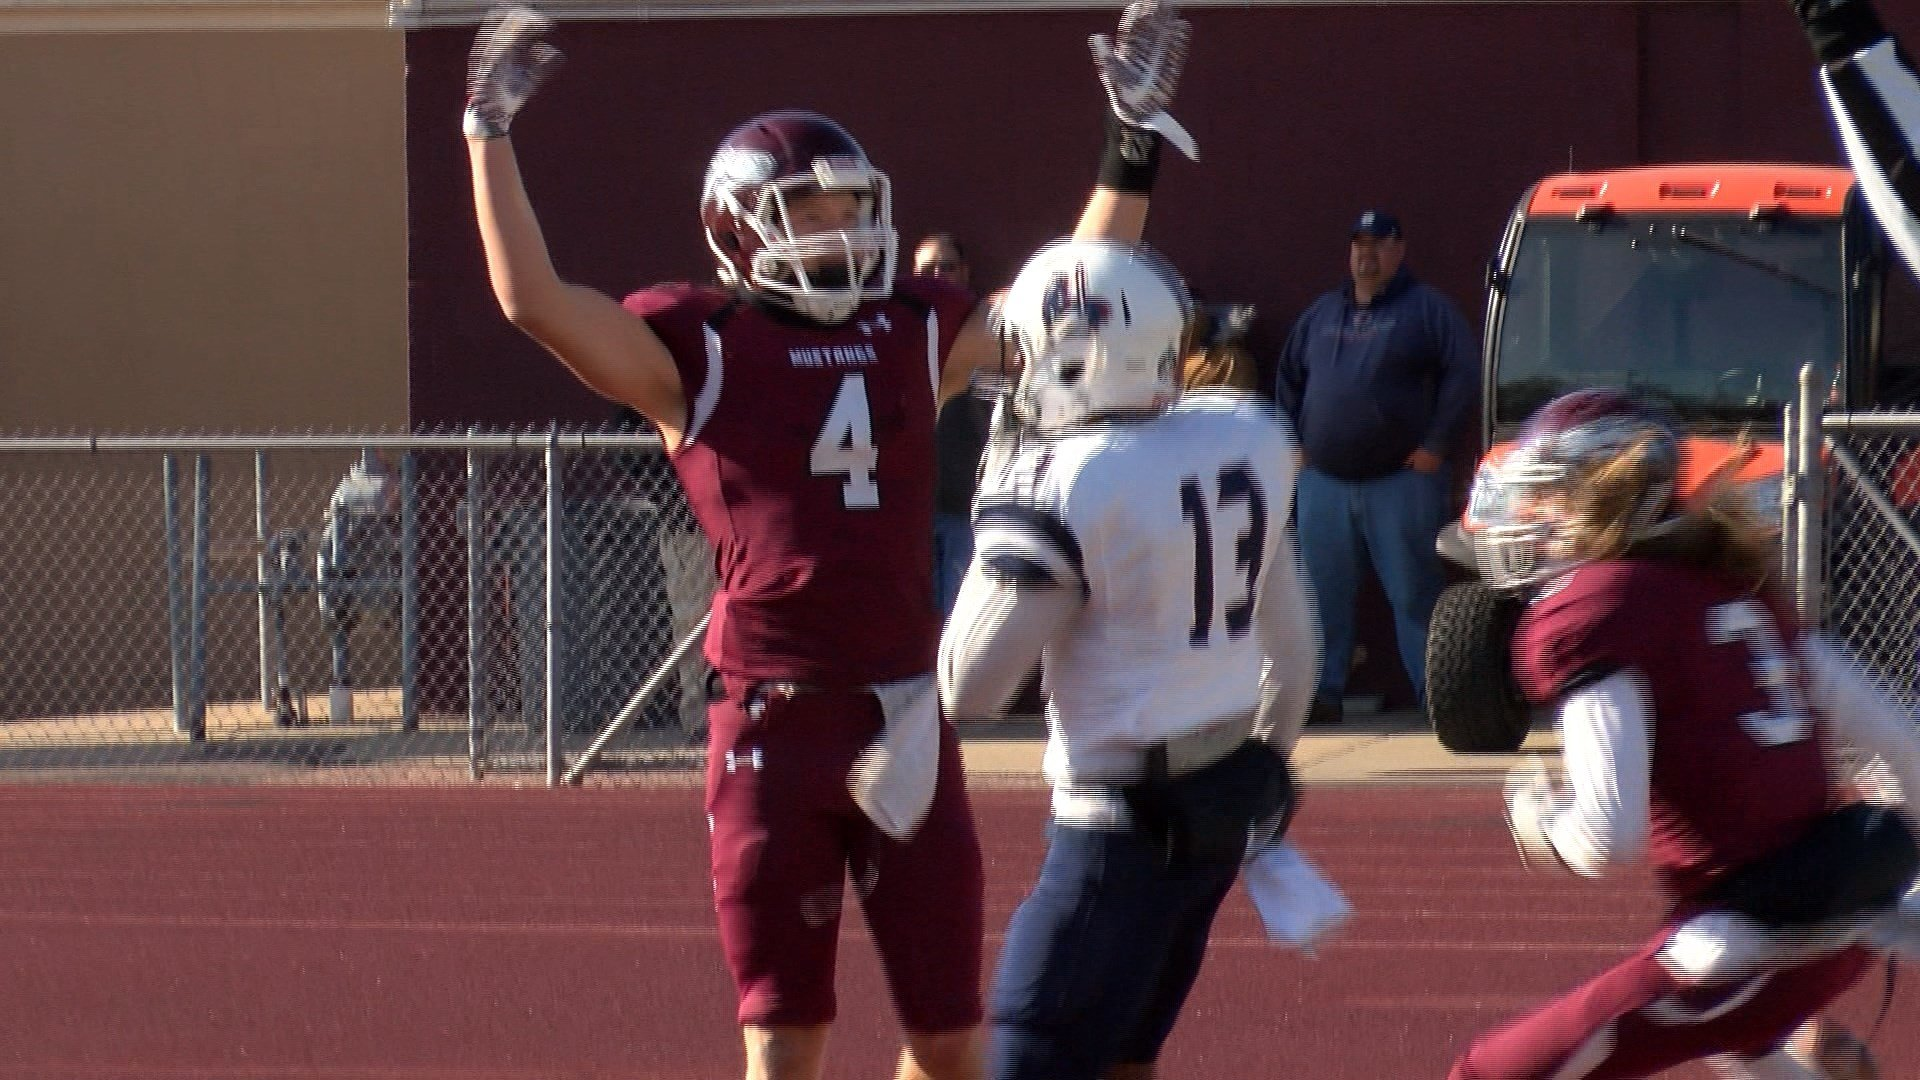 Connor Niles scored three touchdowns and Morningside beat Sterling on Saturday, 63-7.